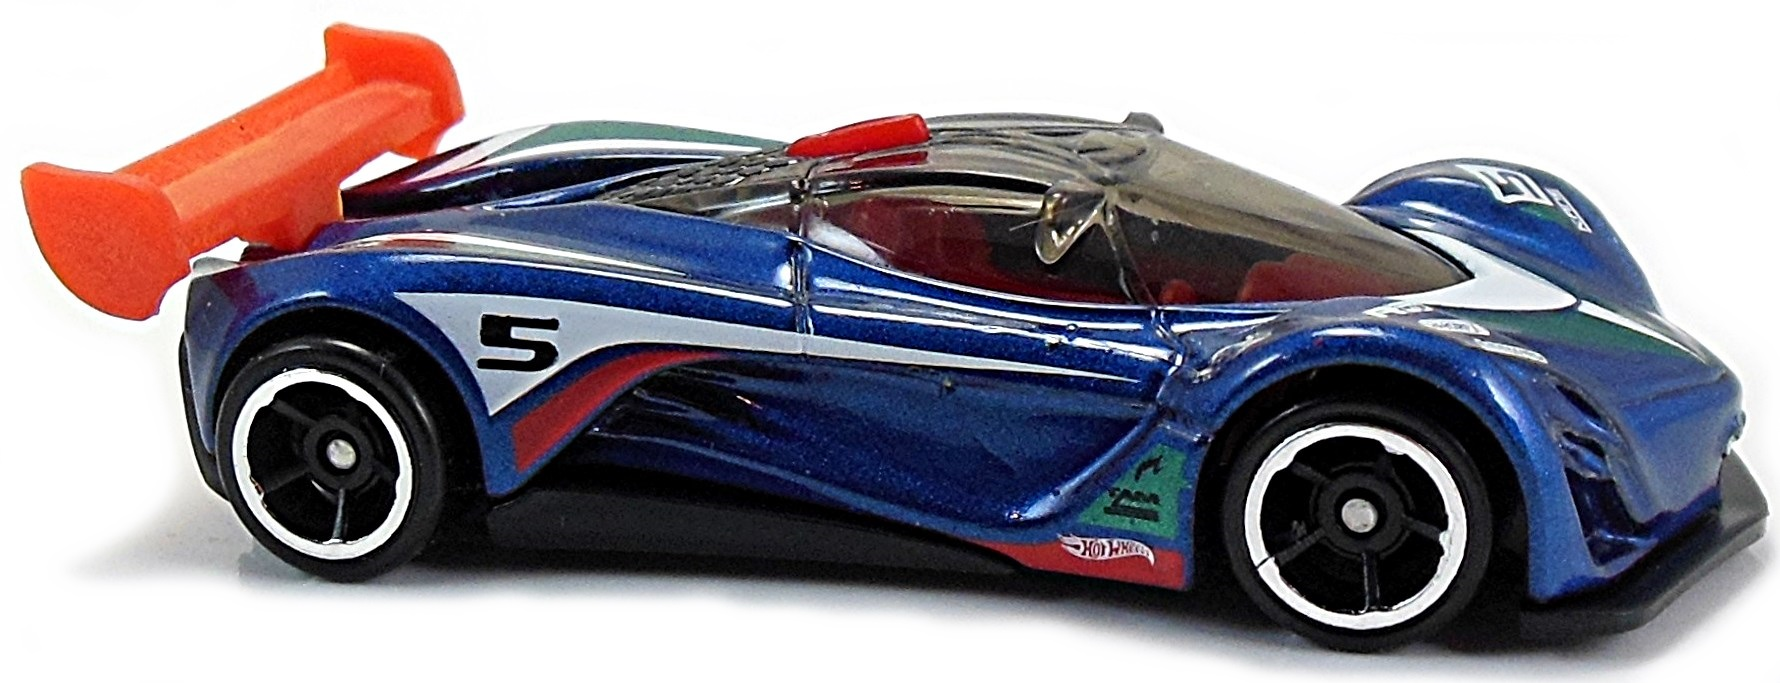 mazda furai – 70mm – 2010 | hot wheels newsletter